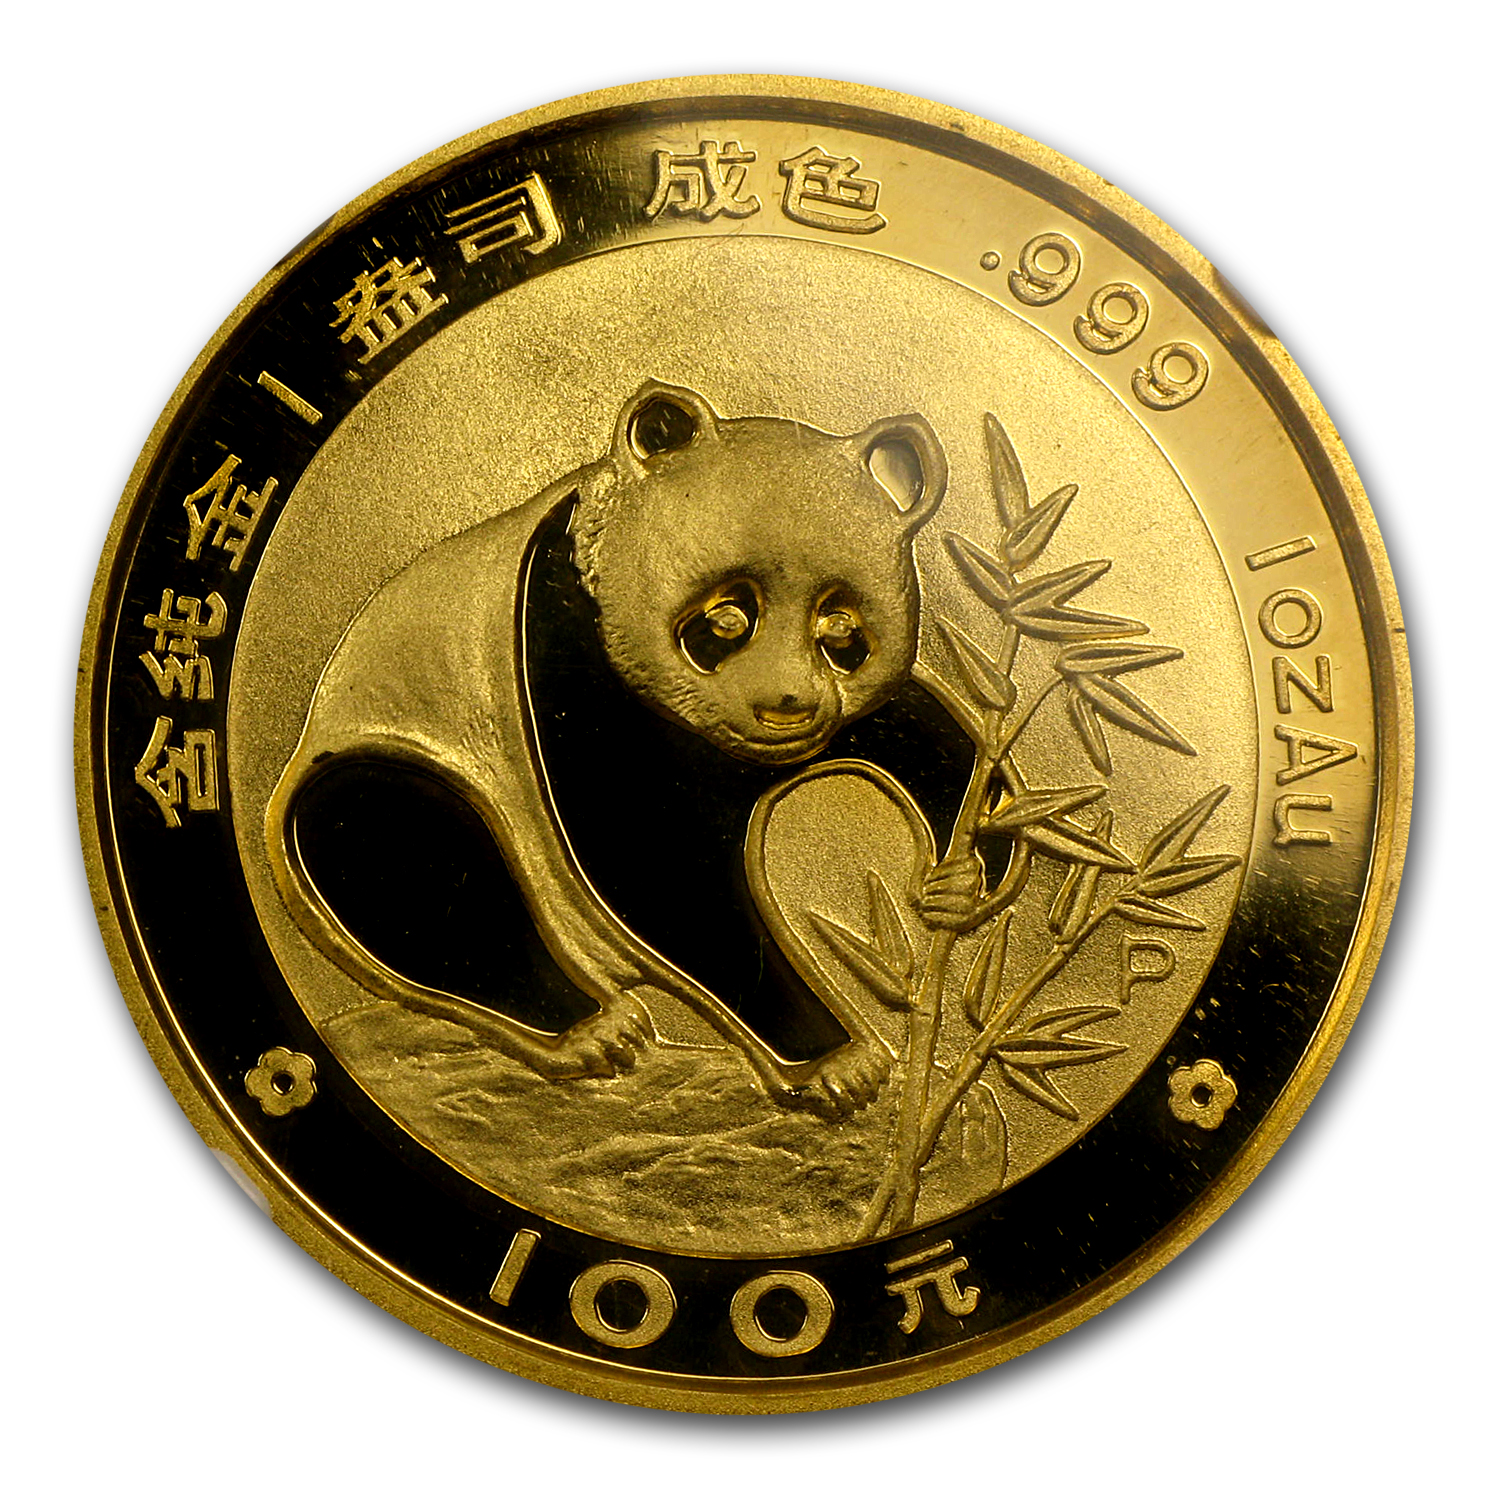 1988 (1 oz Proof) Gold Chinese Pandas - PF-68 UCAM NGC